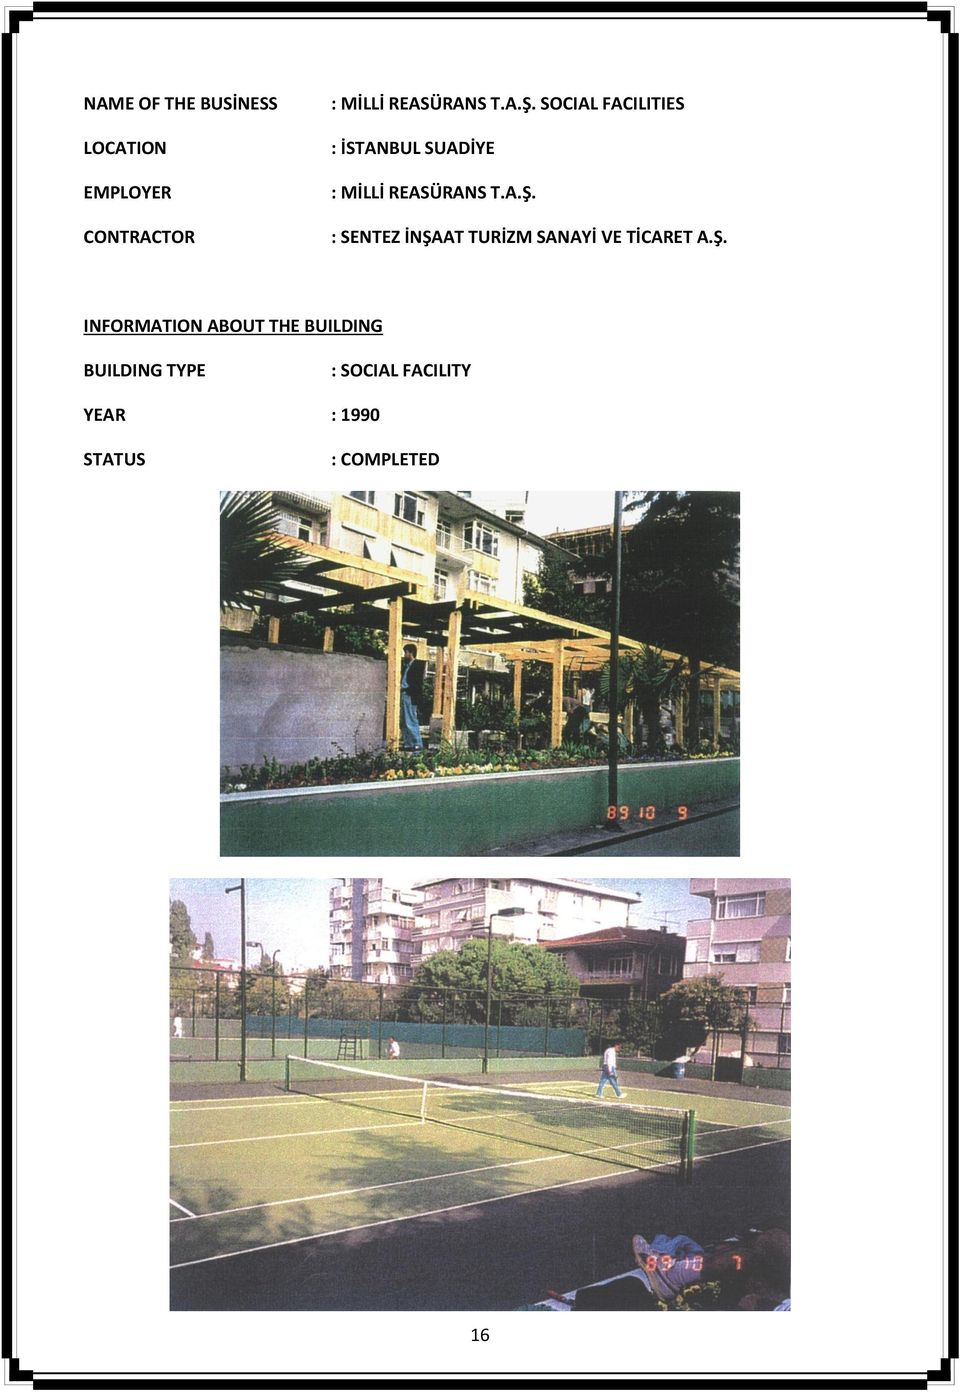 Ş. INFORMATION ABOUT THE BUILDING BUILDING TYPE : SOCIAL FACILITY